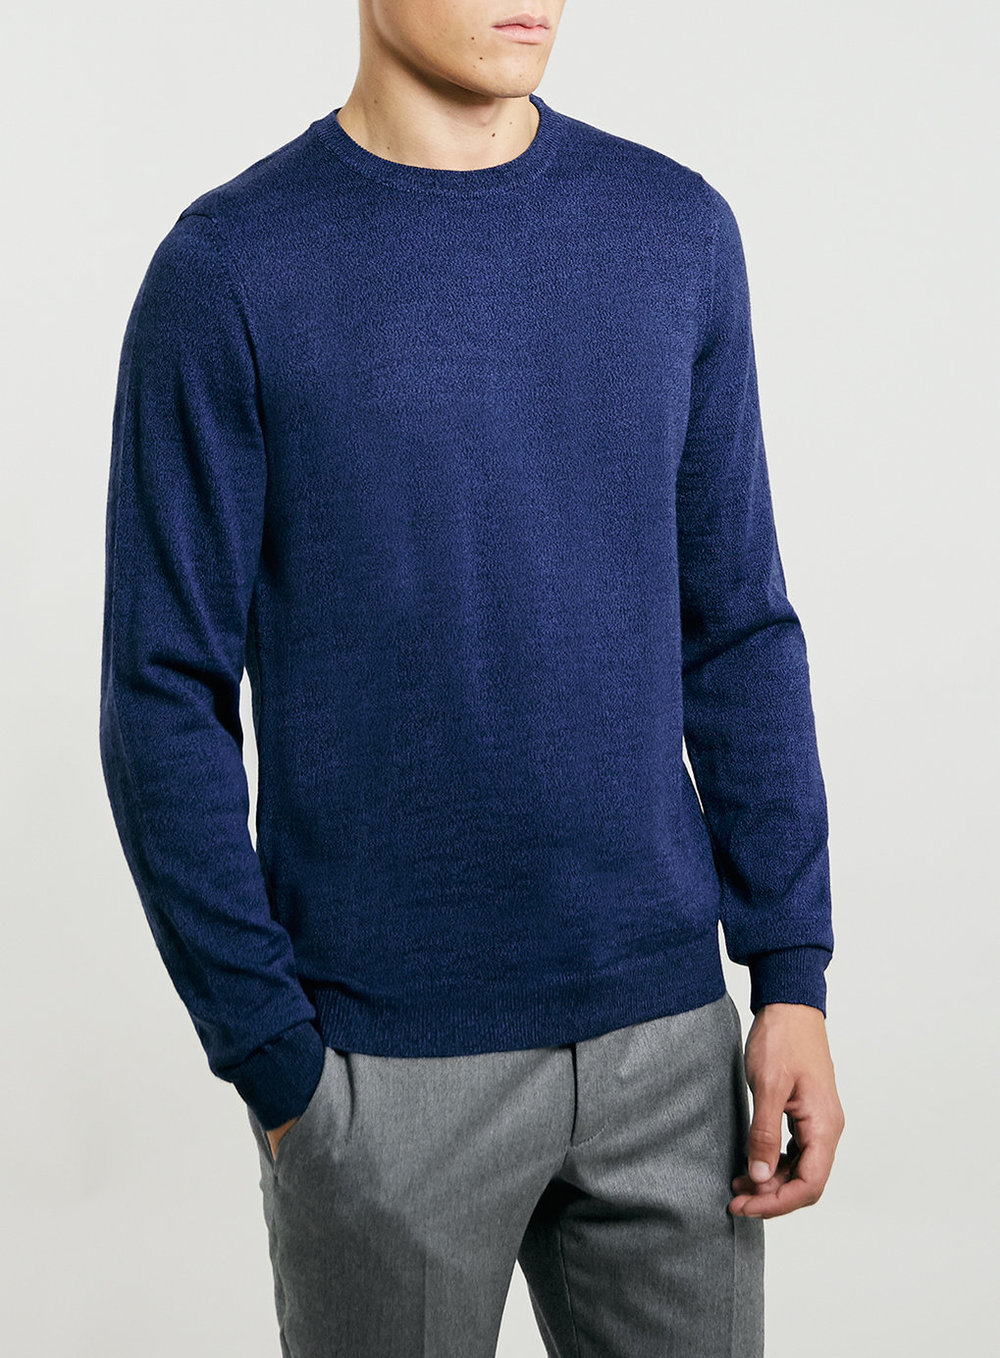 Blue/Black Merino Blend Twist Sweater, was $55, now $44